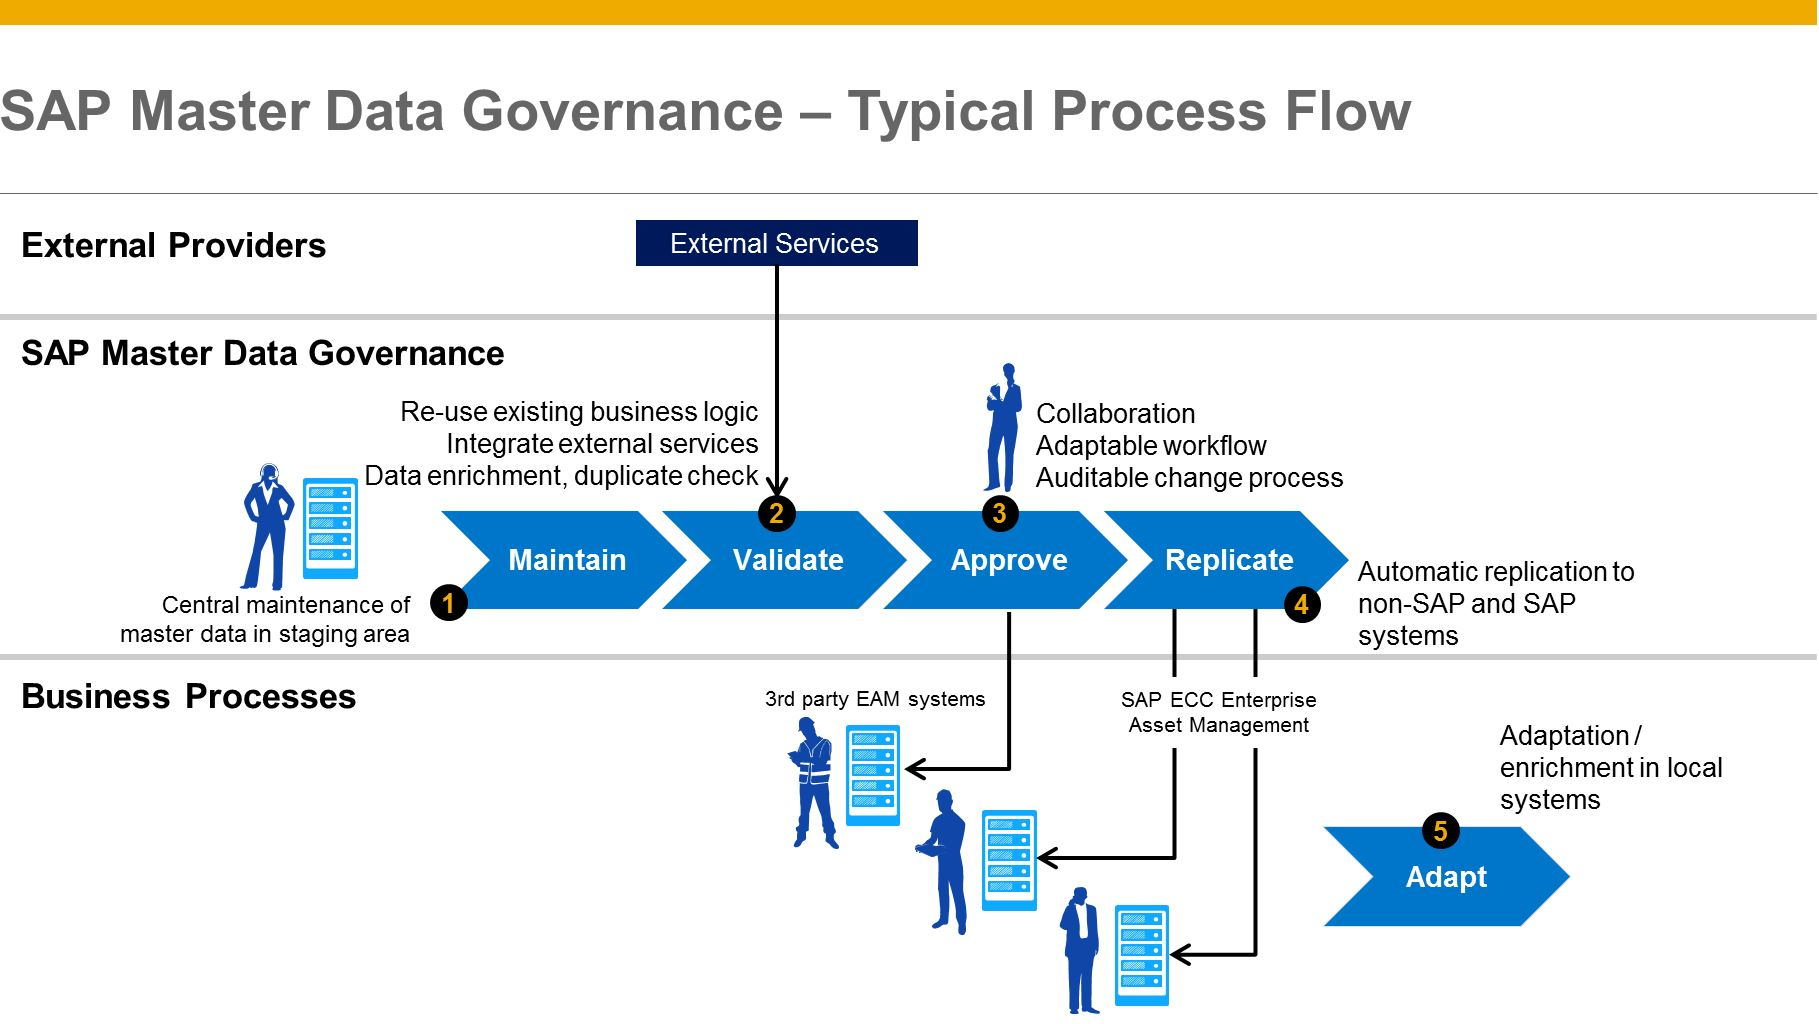 Sap Master Data Governance Enterprise Asset Management Extension By Process Flow Diagram Numbering Mdg